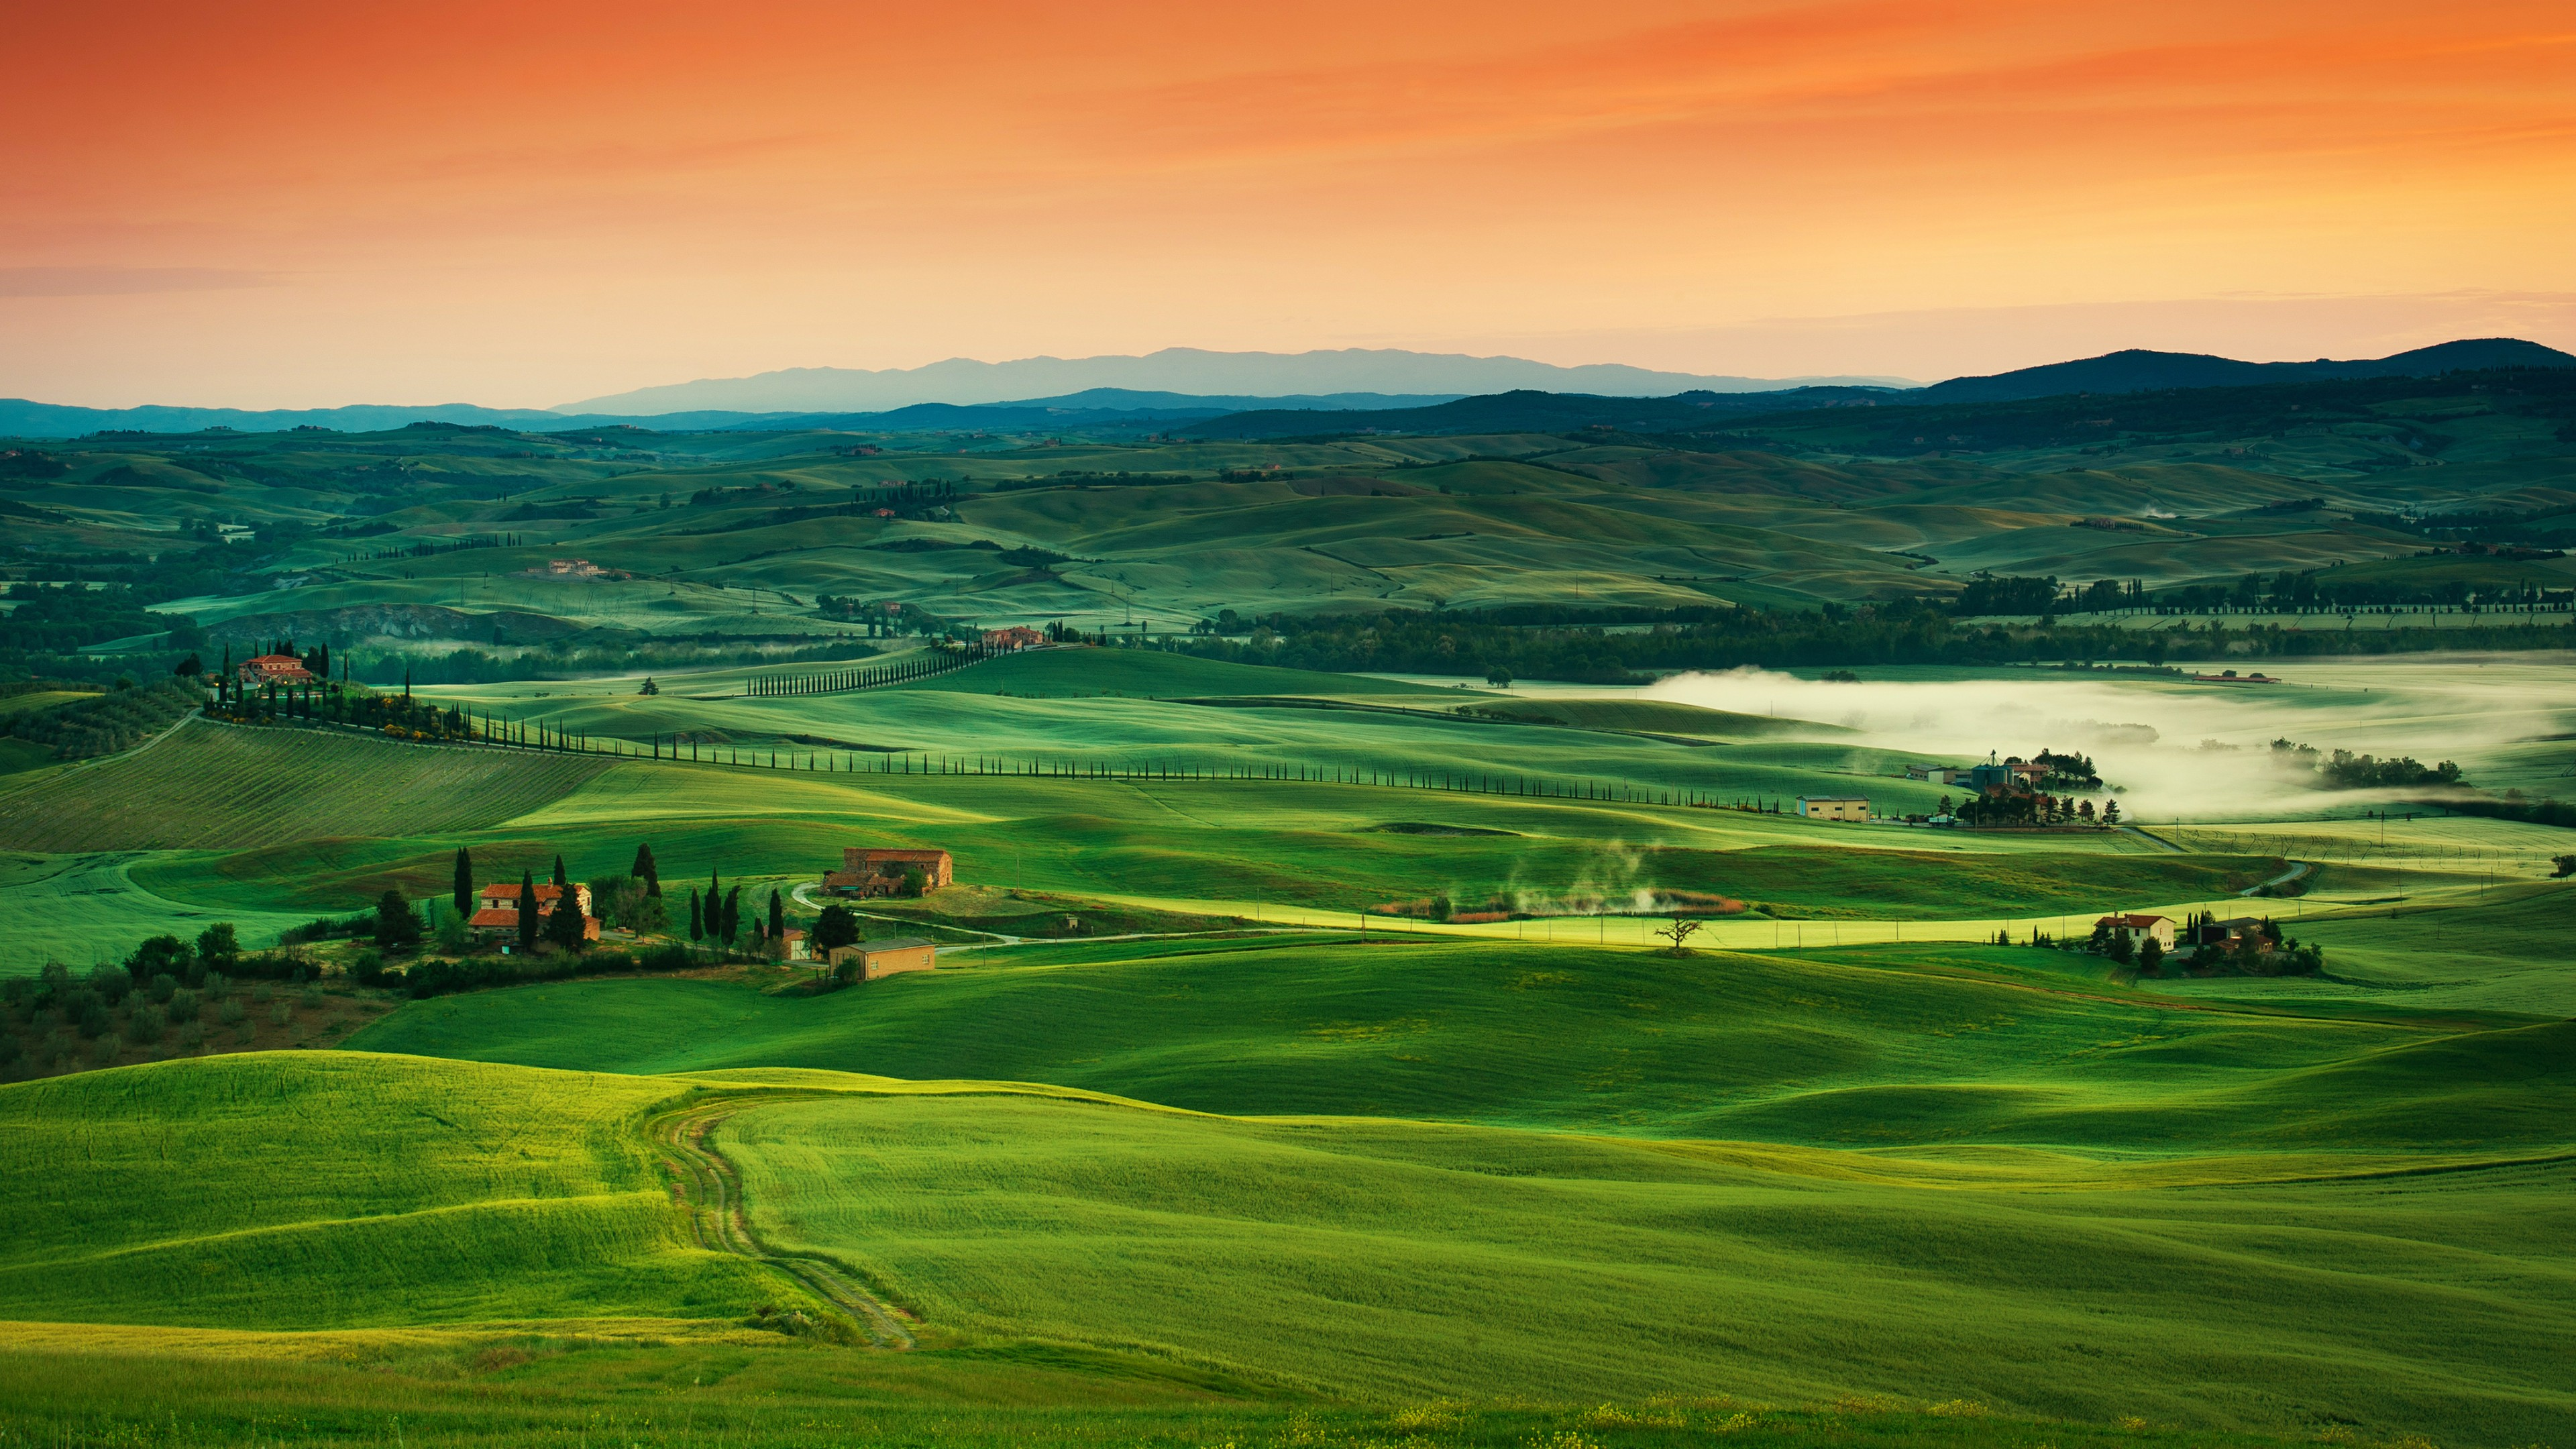 Rolling Countryside Of Tuscany, Italy 4K UltraHD Wallpaper ...